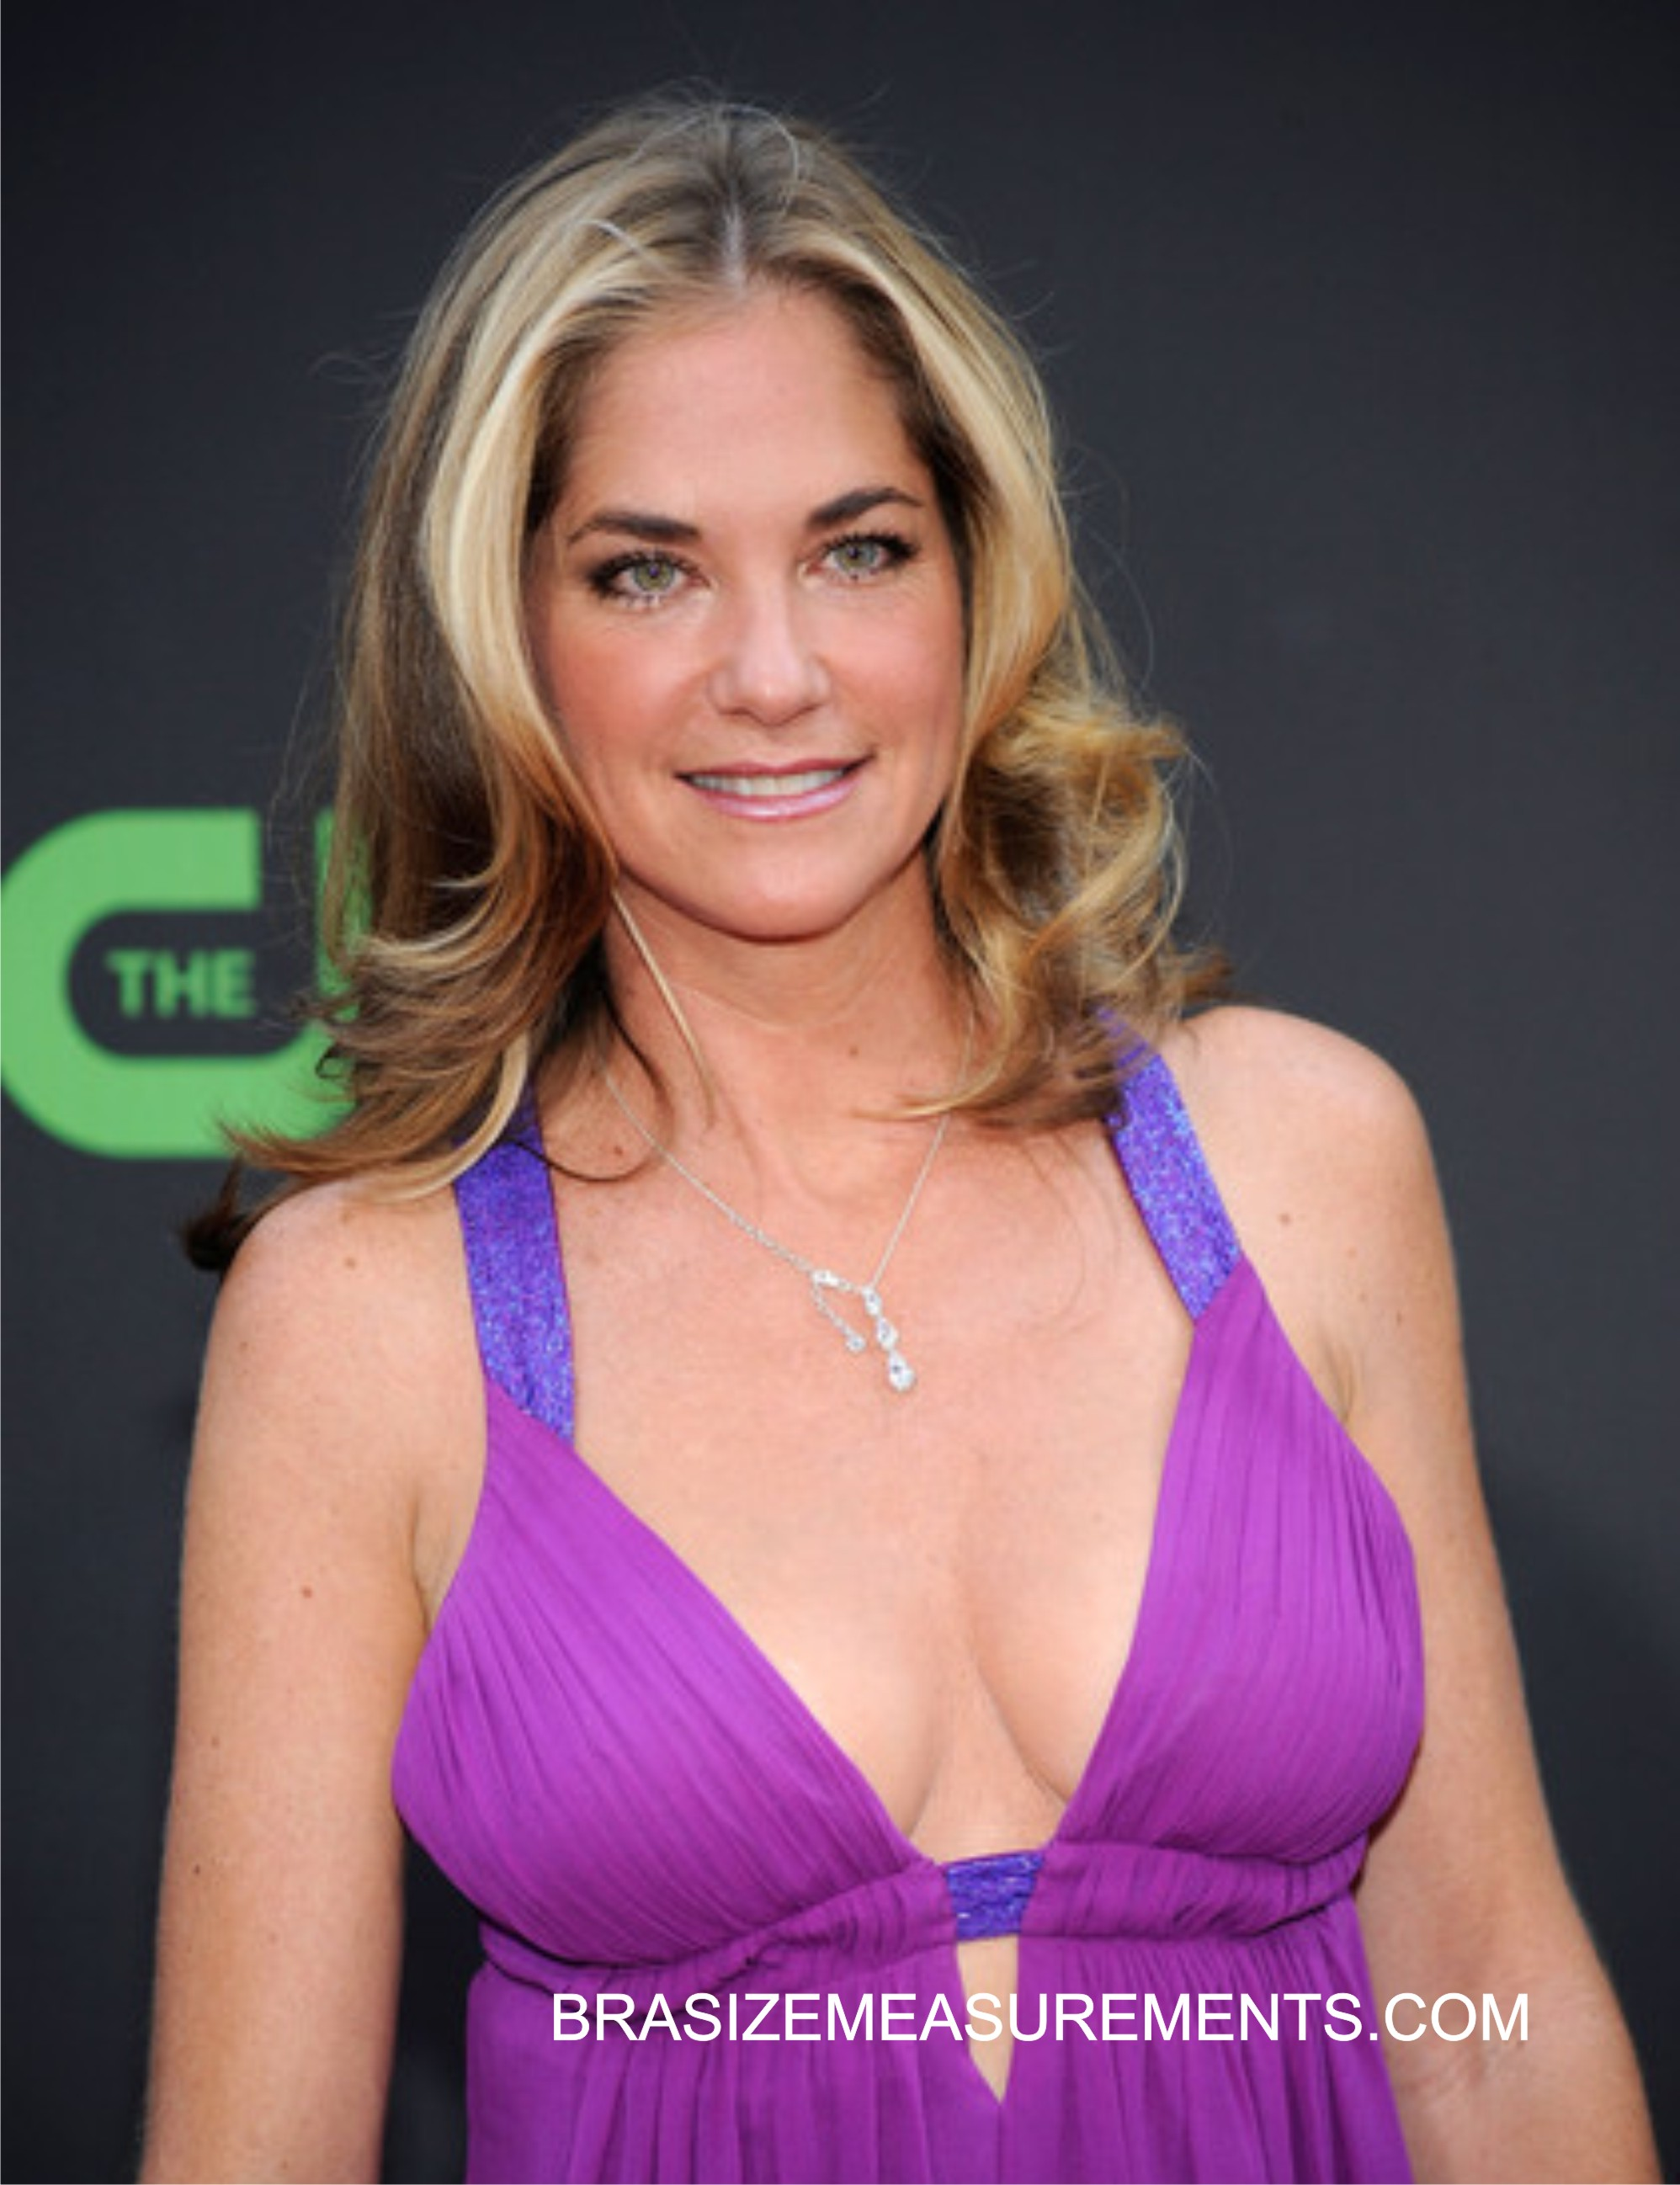 Kassie depaiva bra size and body measurements celebrity bra size kassie depaiva bra size winobraniefo Image collections